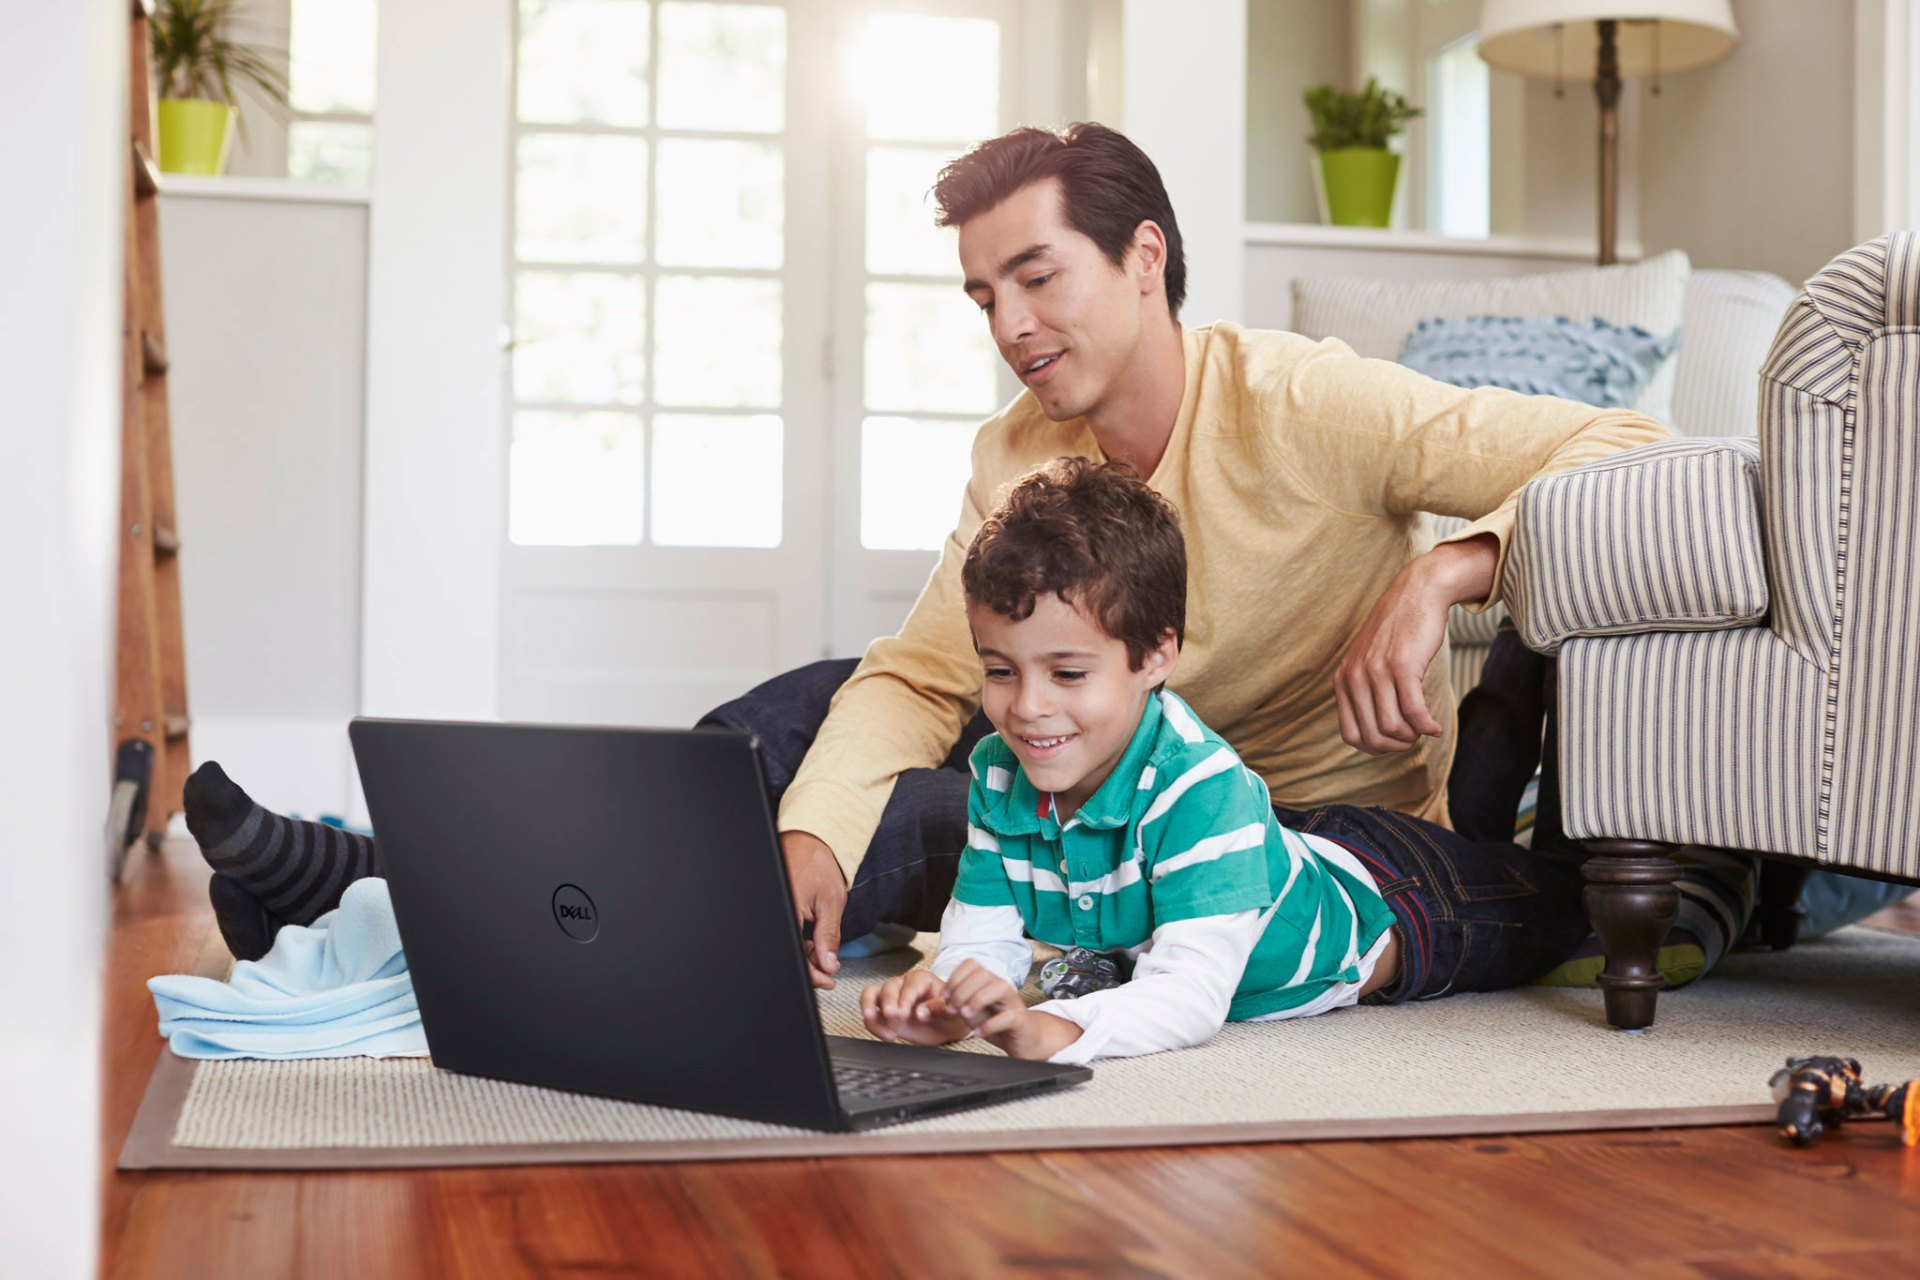 Father and Son Using Inspiron 14 3000 Series Notebook on Floor